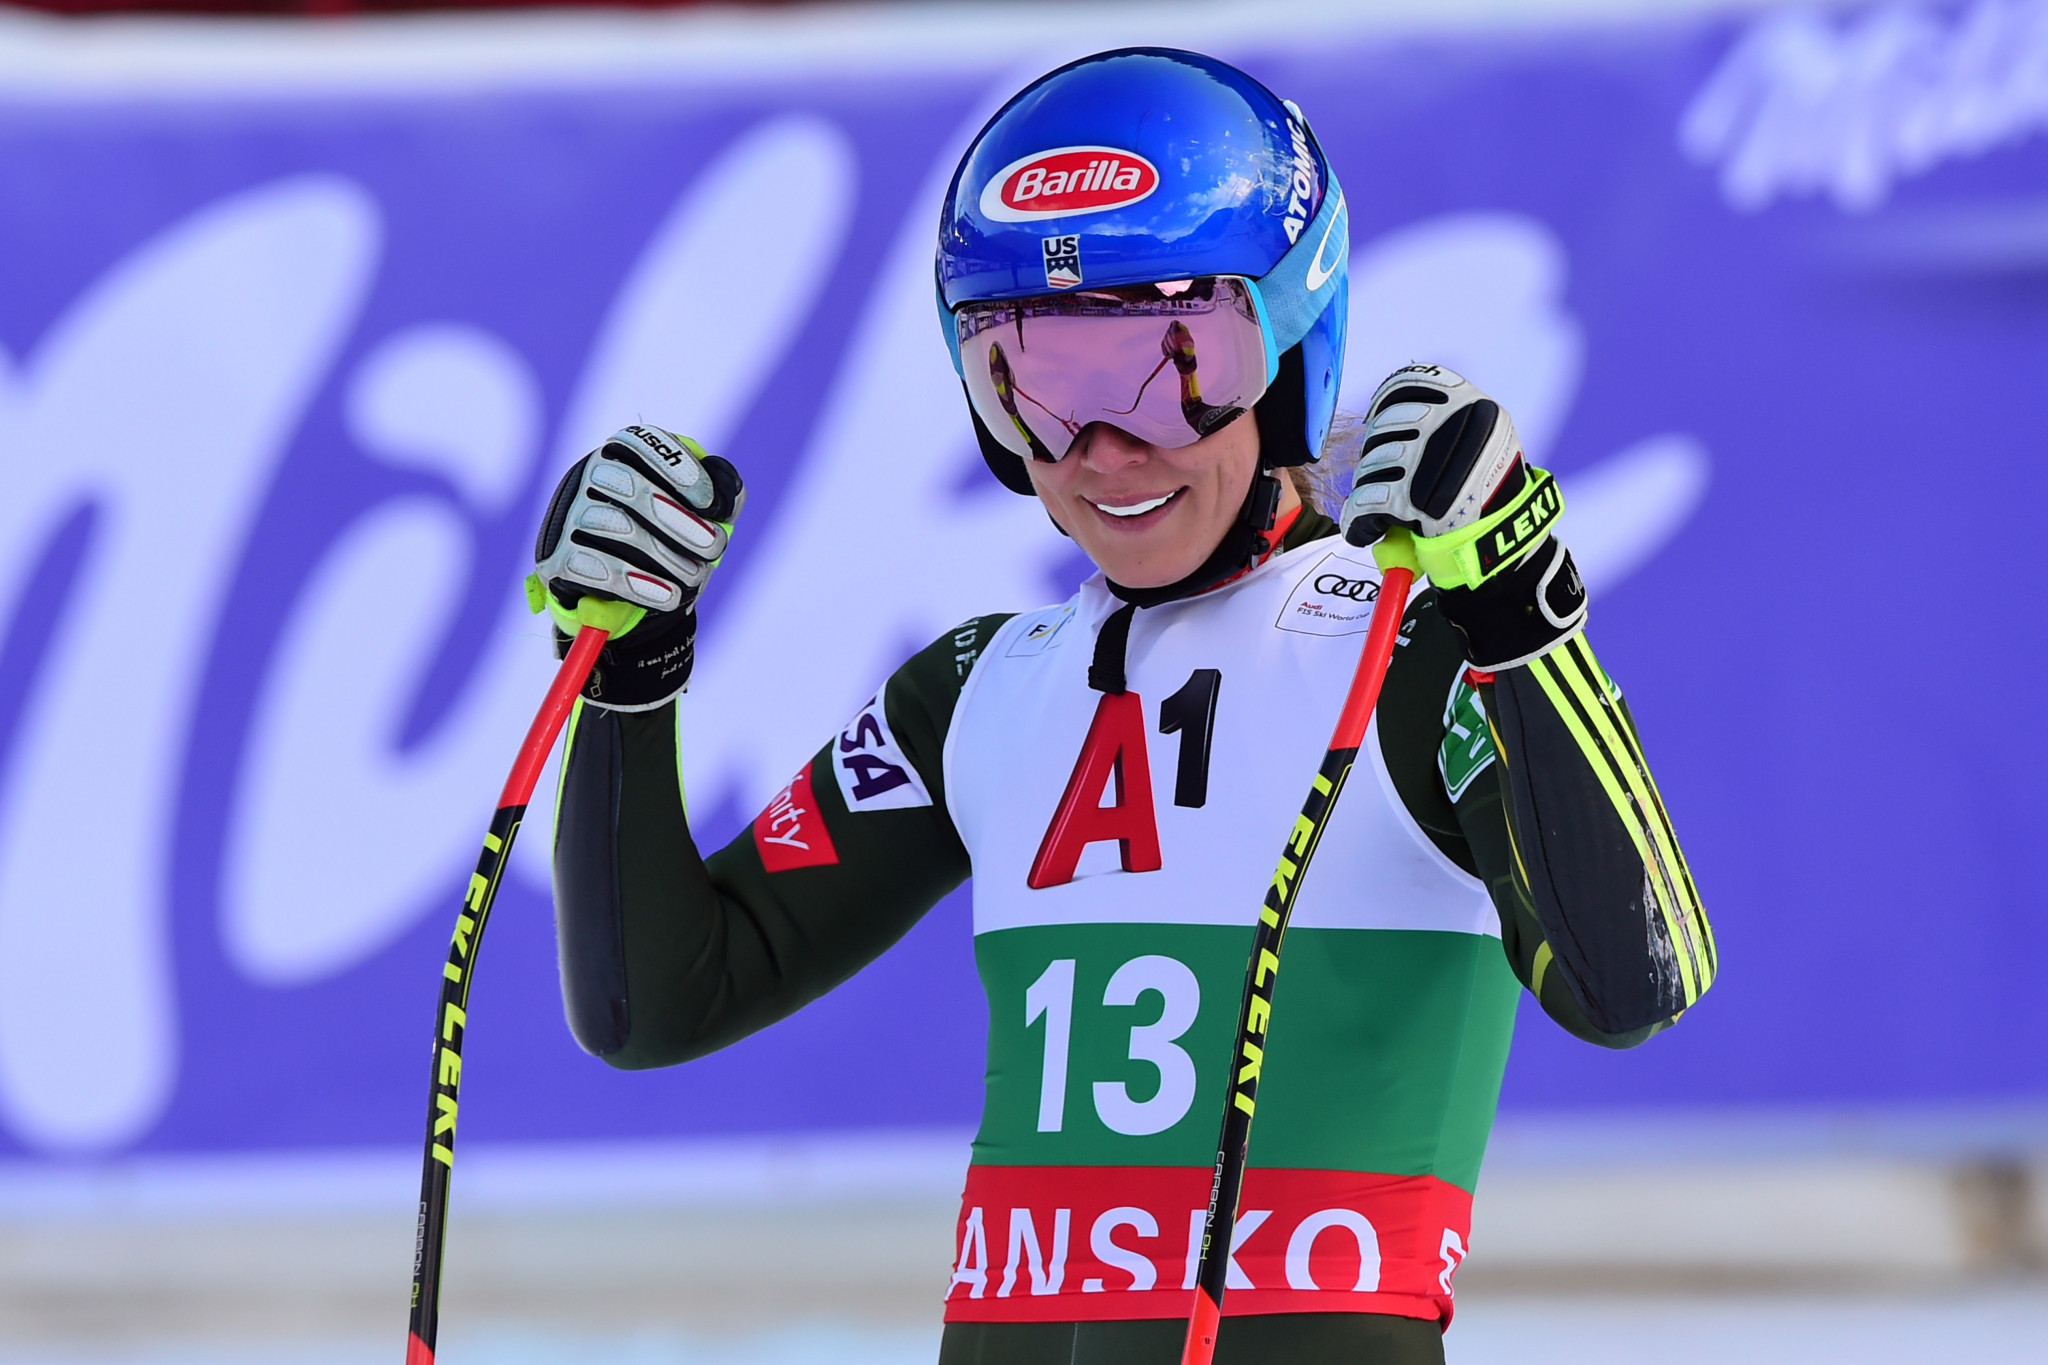 Shiffrin makes it two wins in World Cup weekend with super-G victory